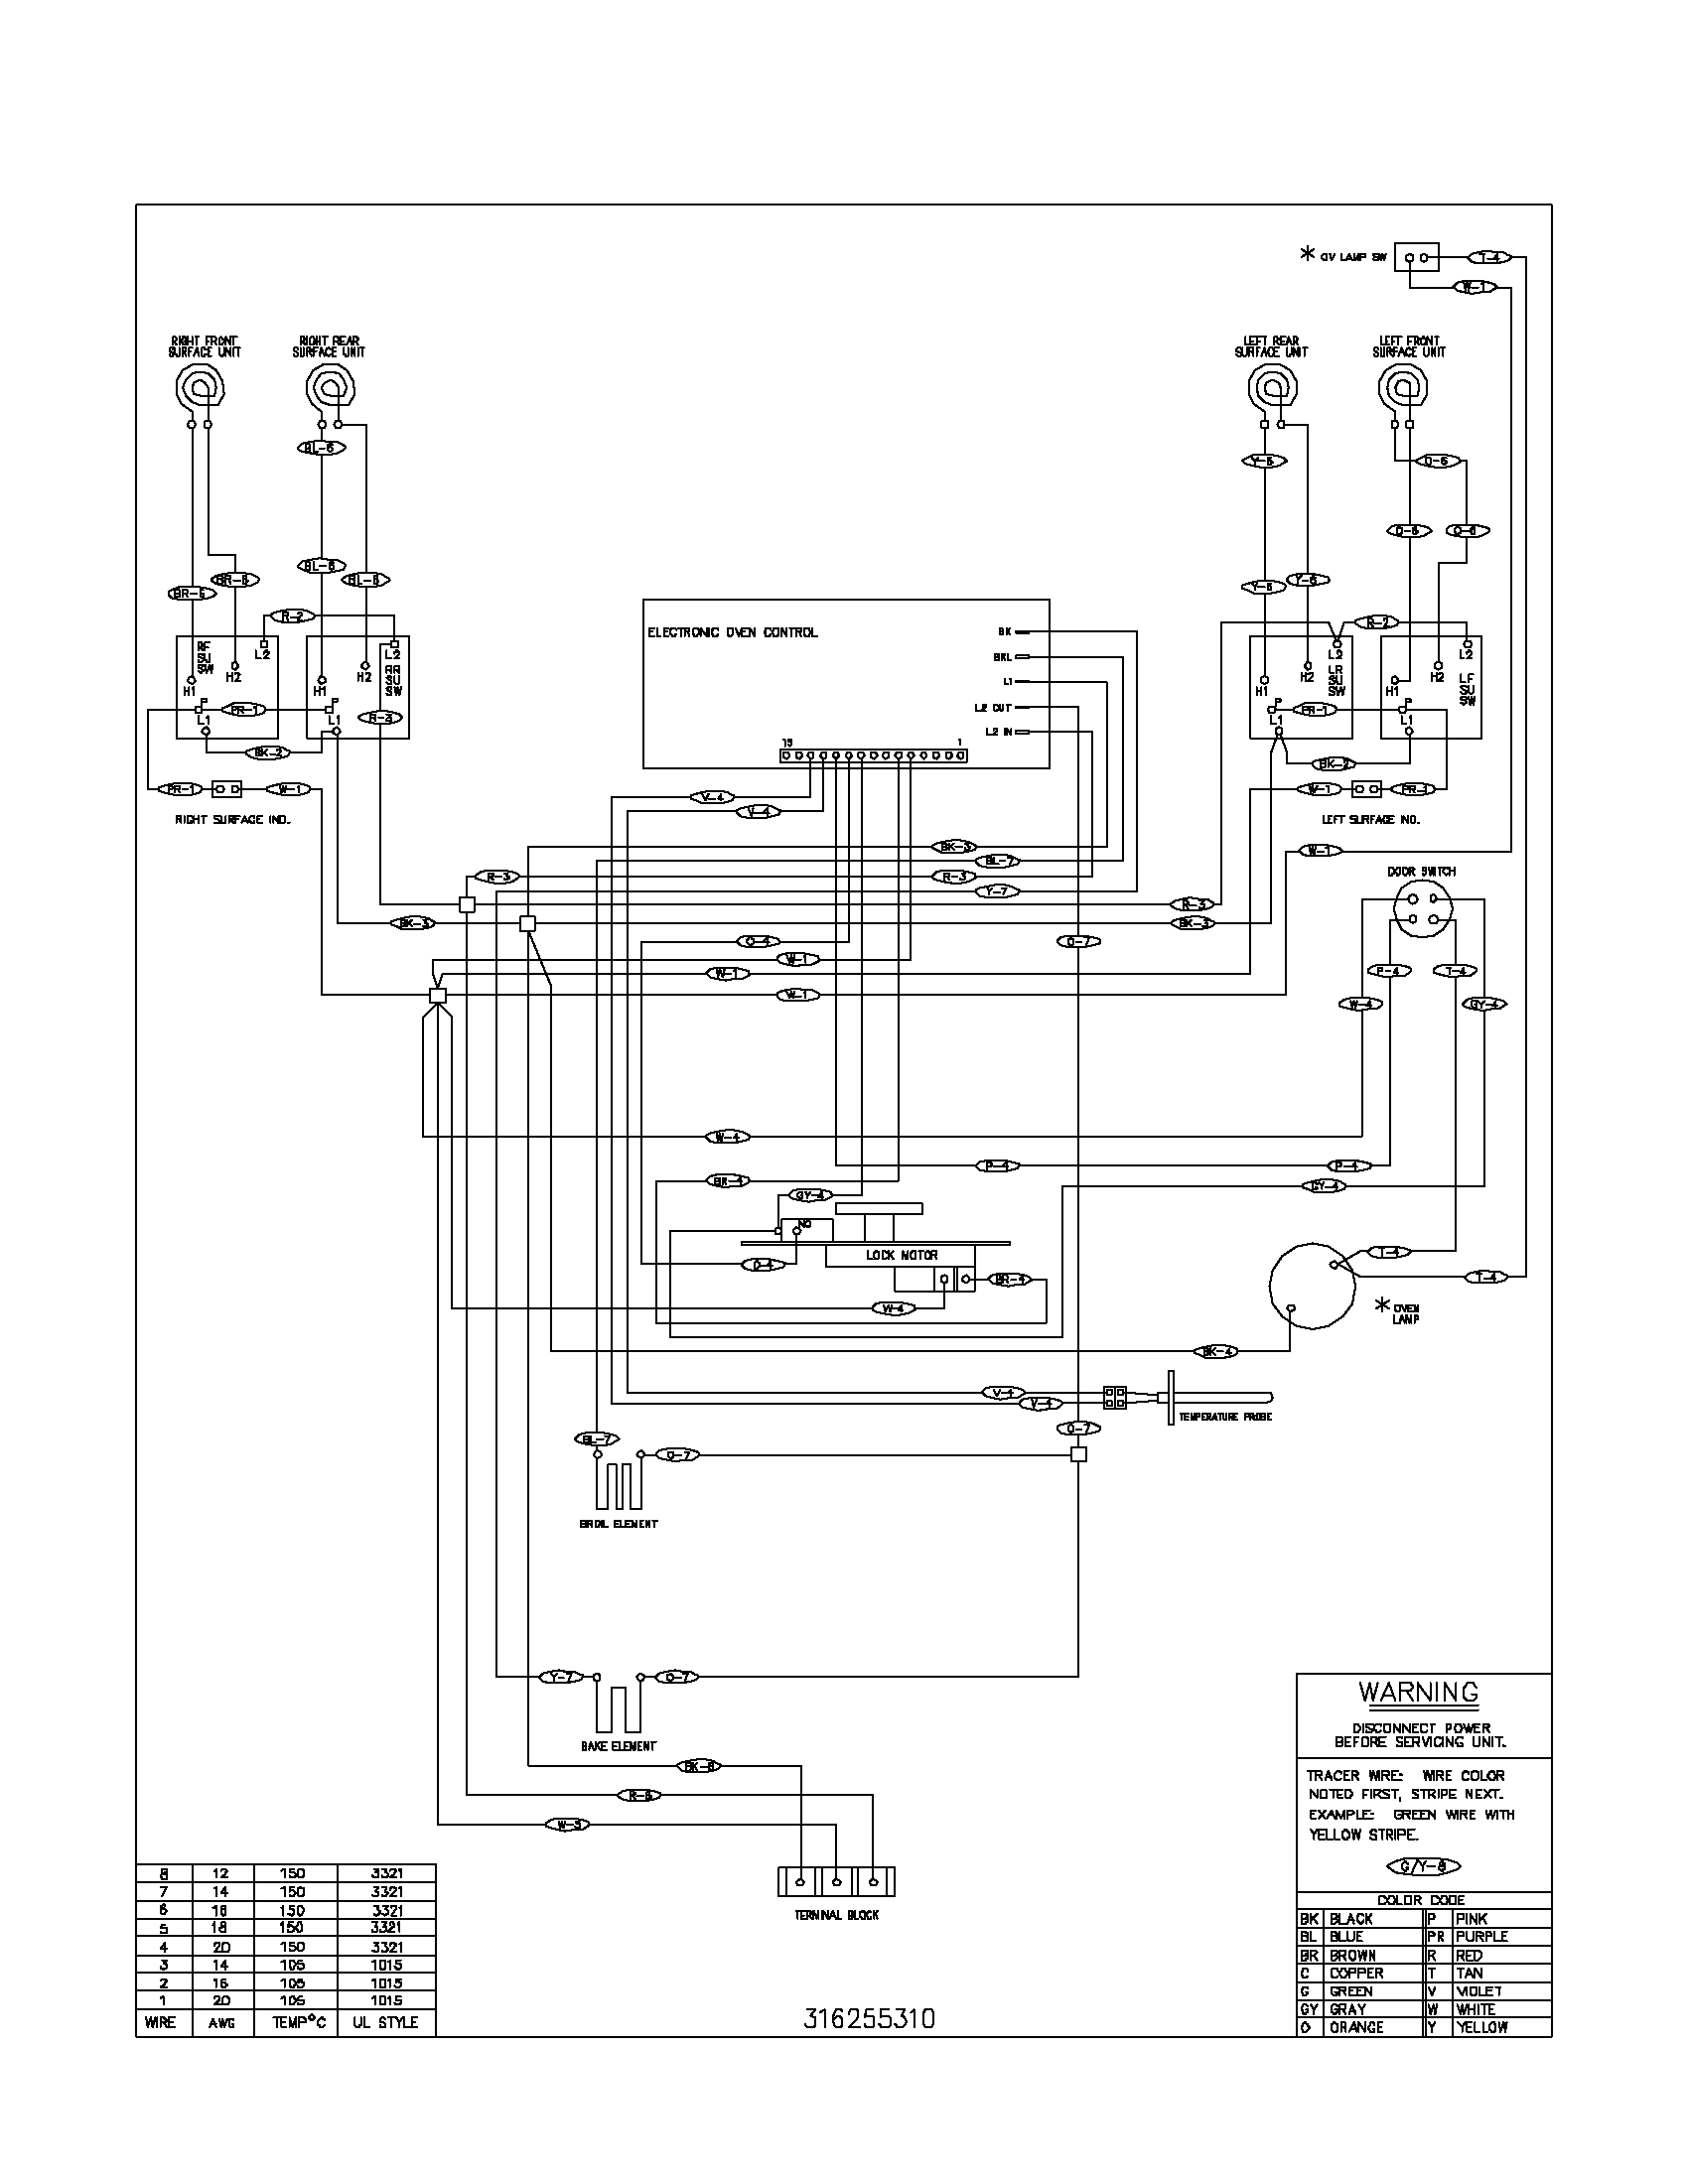 Refrigerator Wiring Diagram Parts